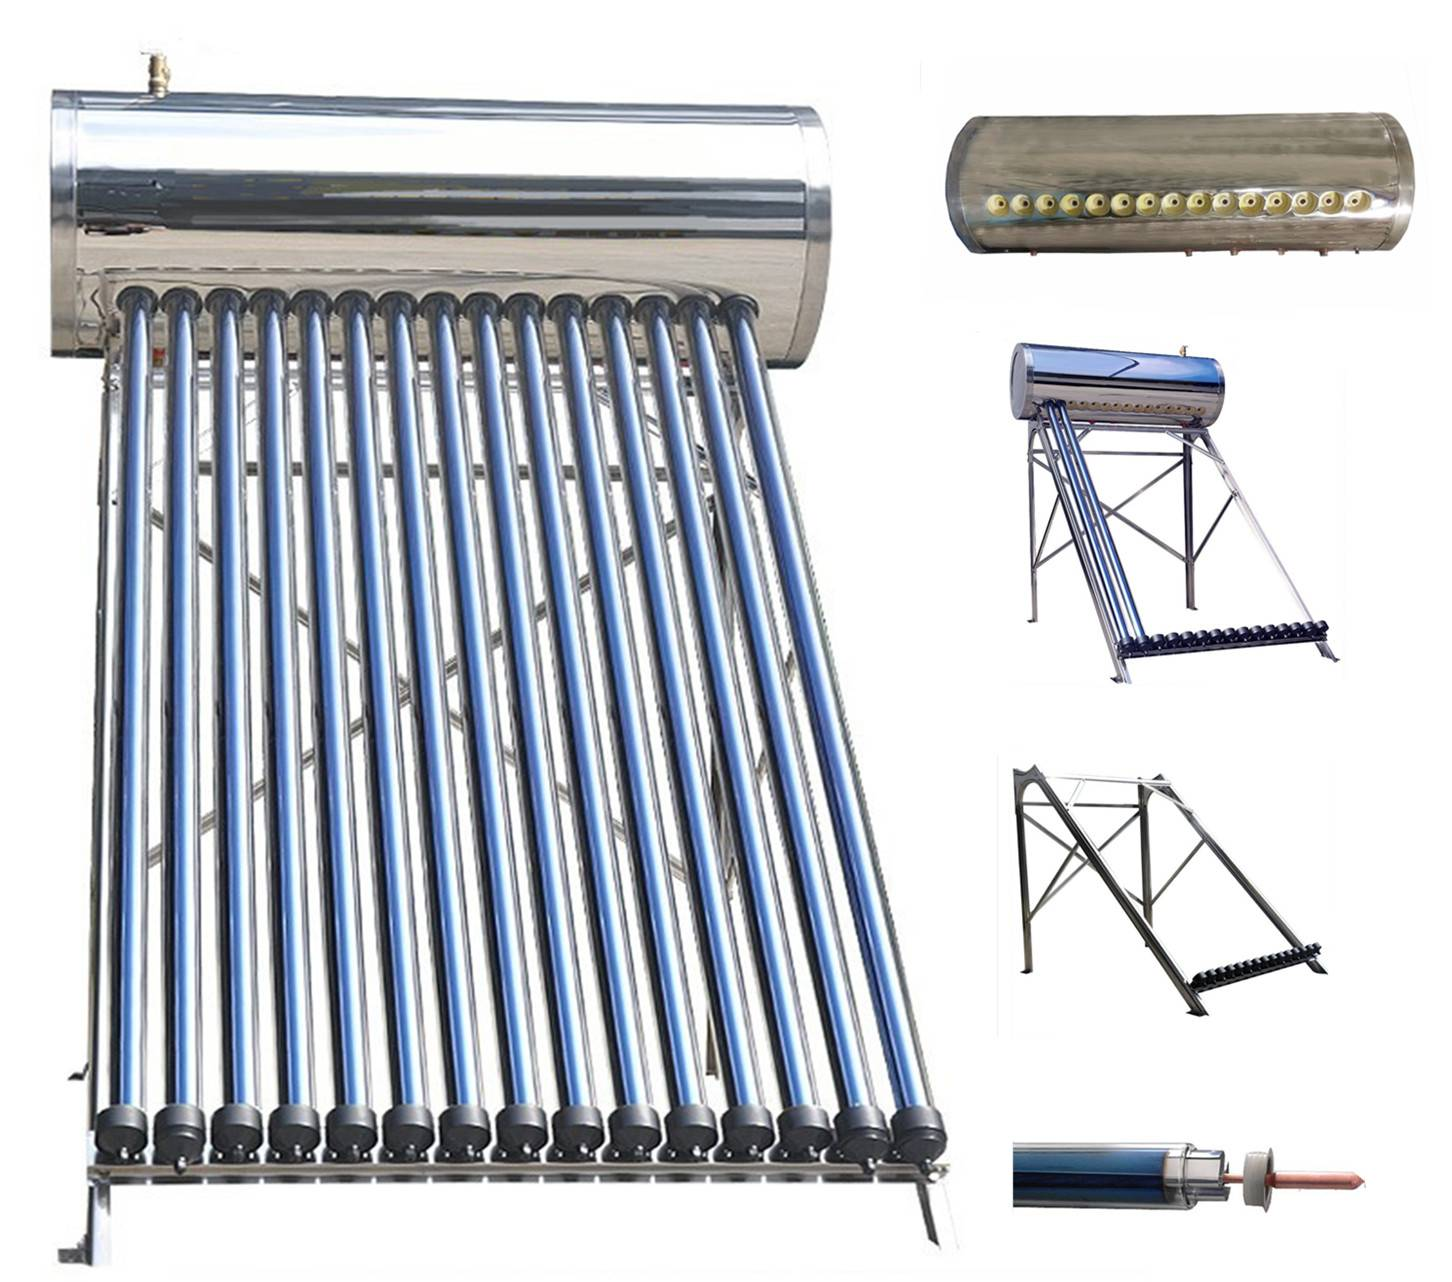 solar water heater system with solar hot water tank